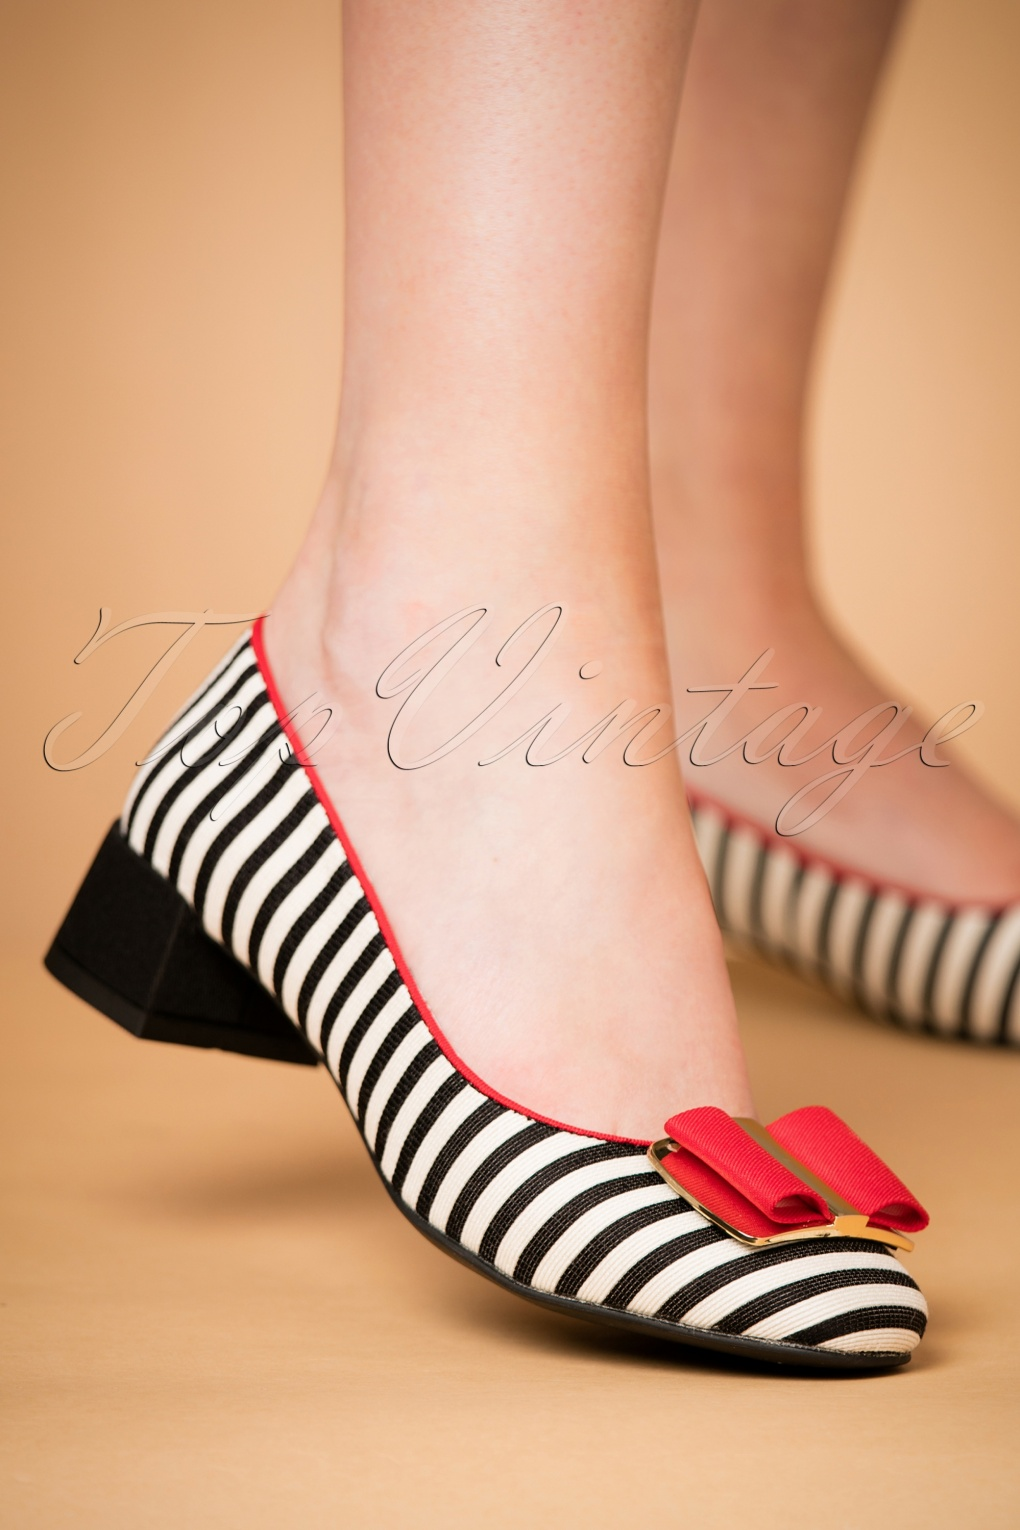 60s Shoes, Boots | 70s Shoes, Platforms, Boots 60s June Striped Pumps in Black and Red £60.85 AT vintagedancer.com